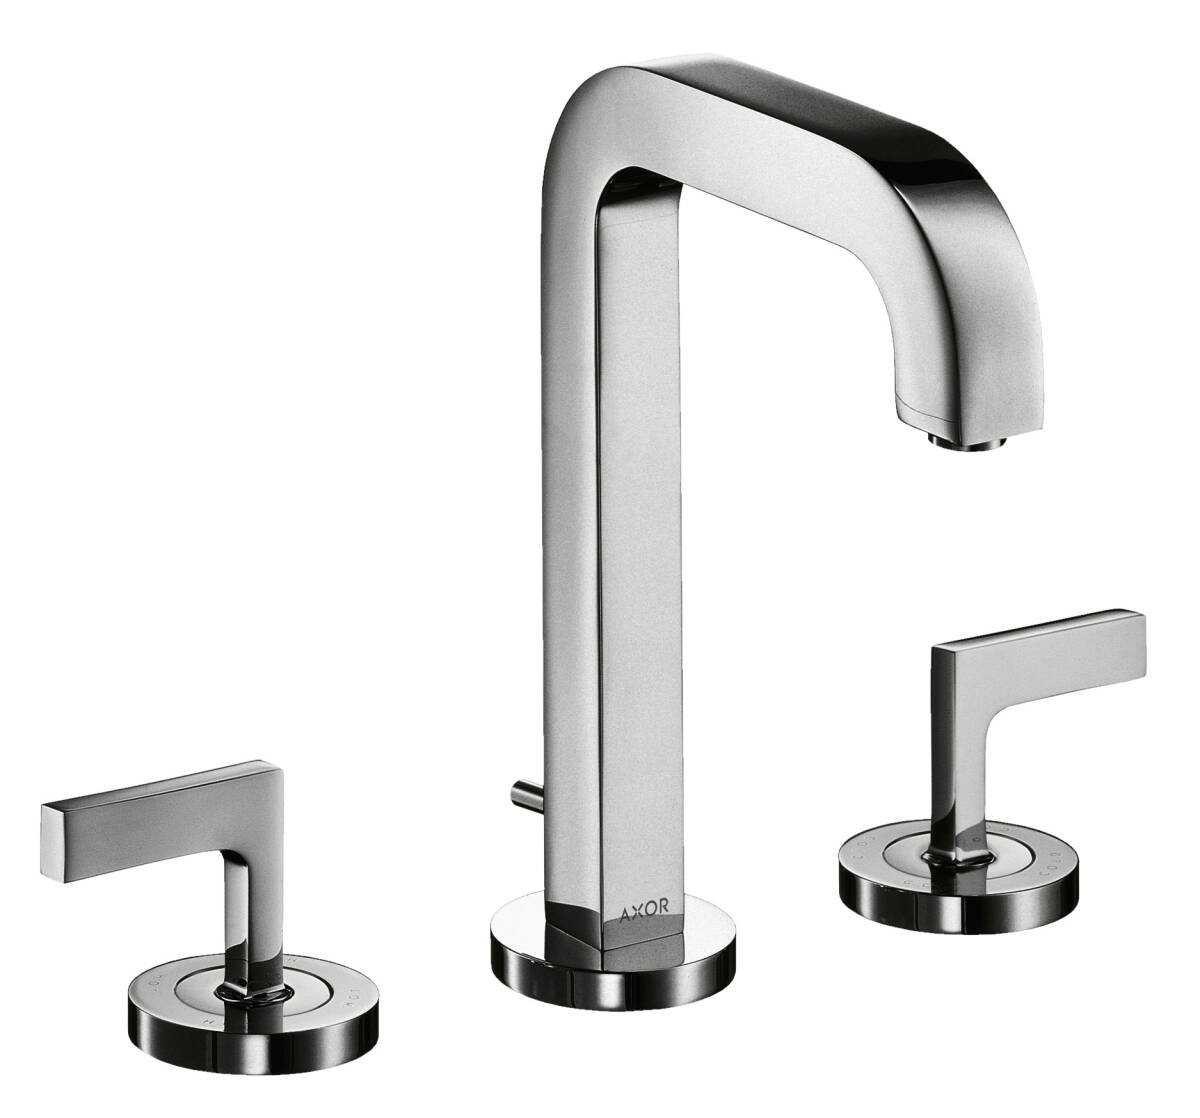 3-hole basin mixer 170 with pop-up waste set and spout 140 mm, lever handles and escutcheons, Chrome, 39135000